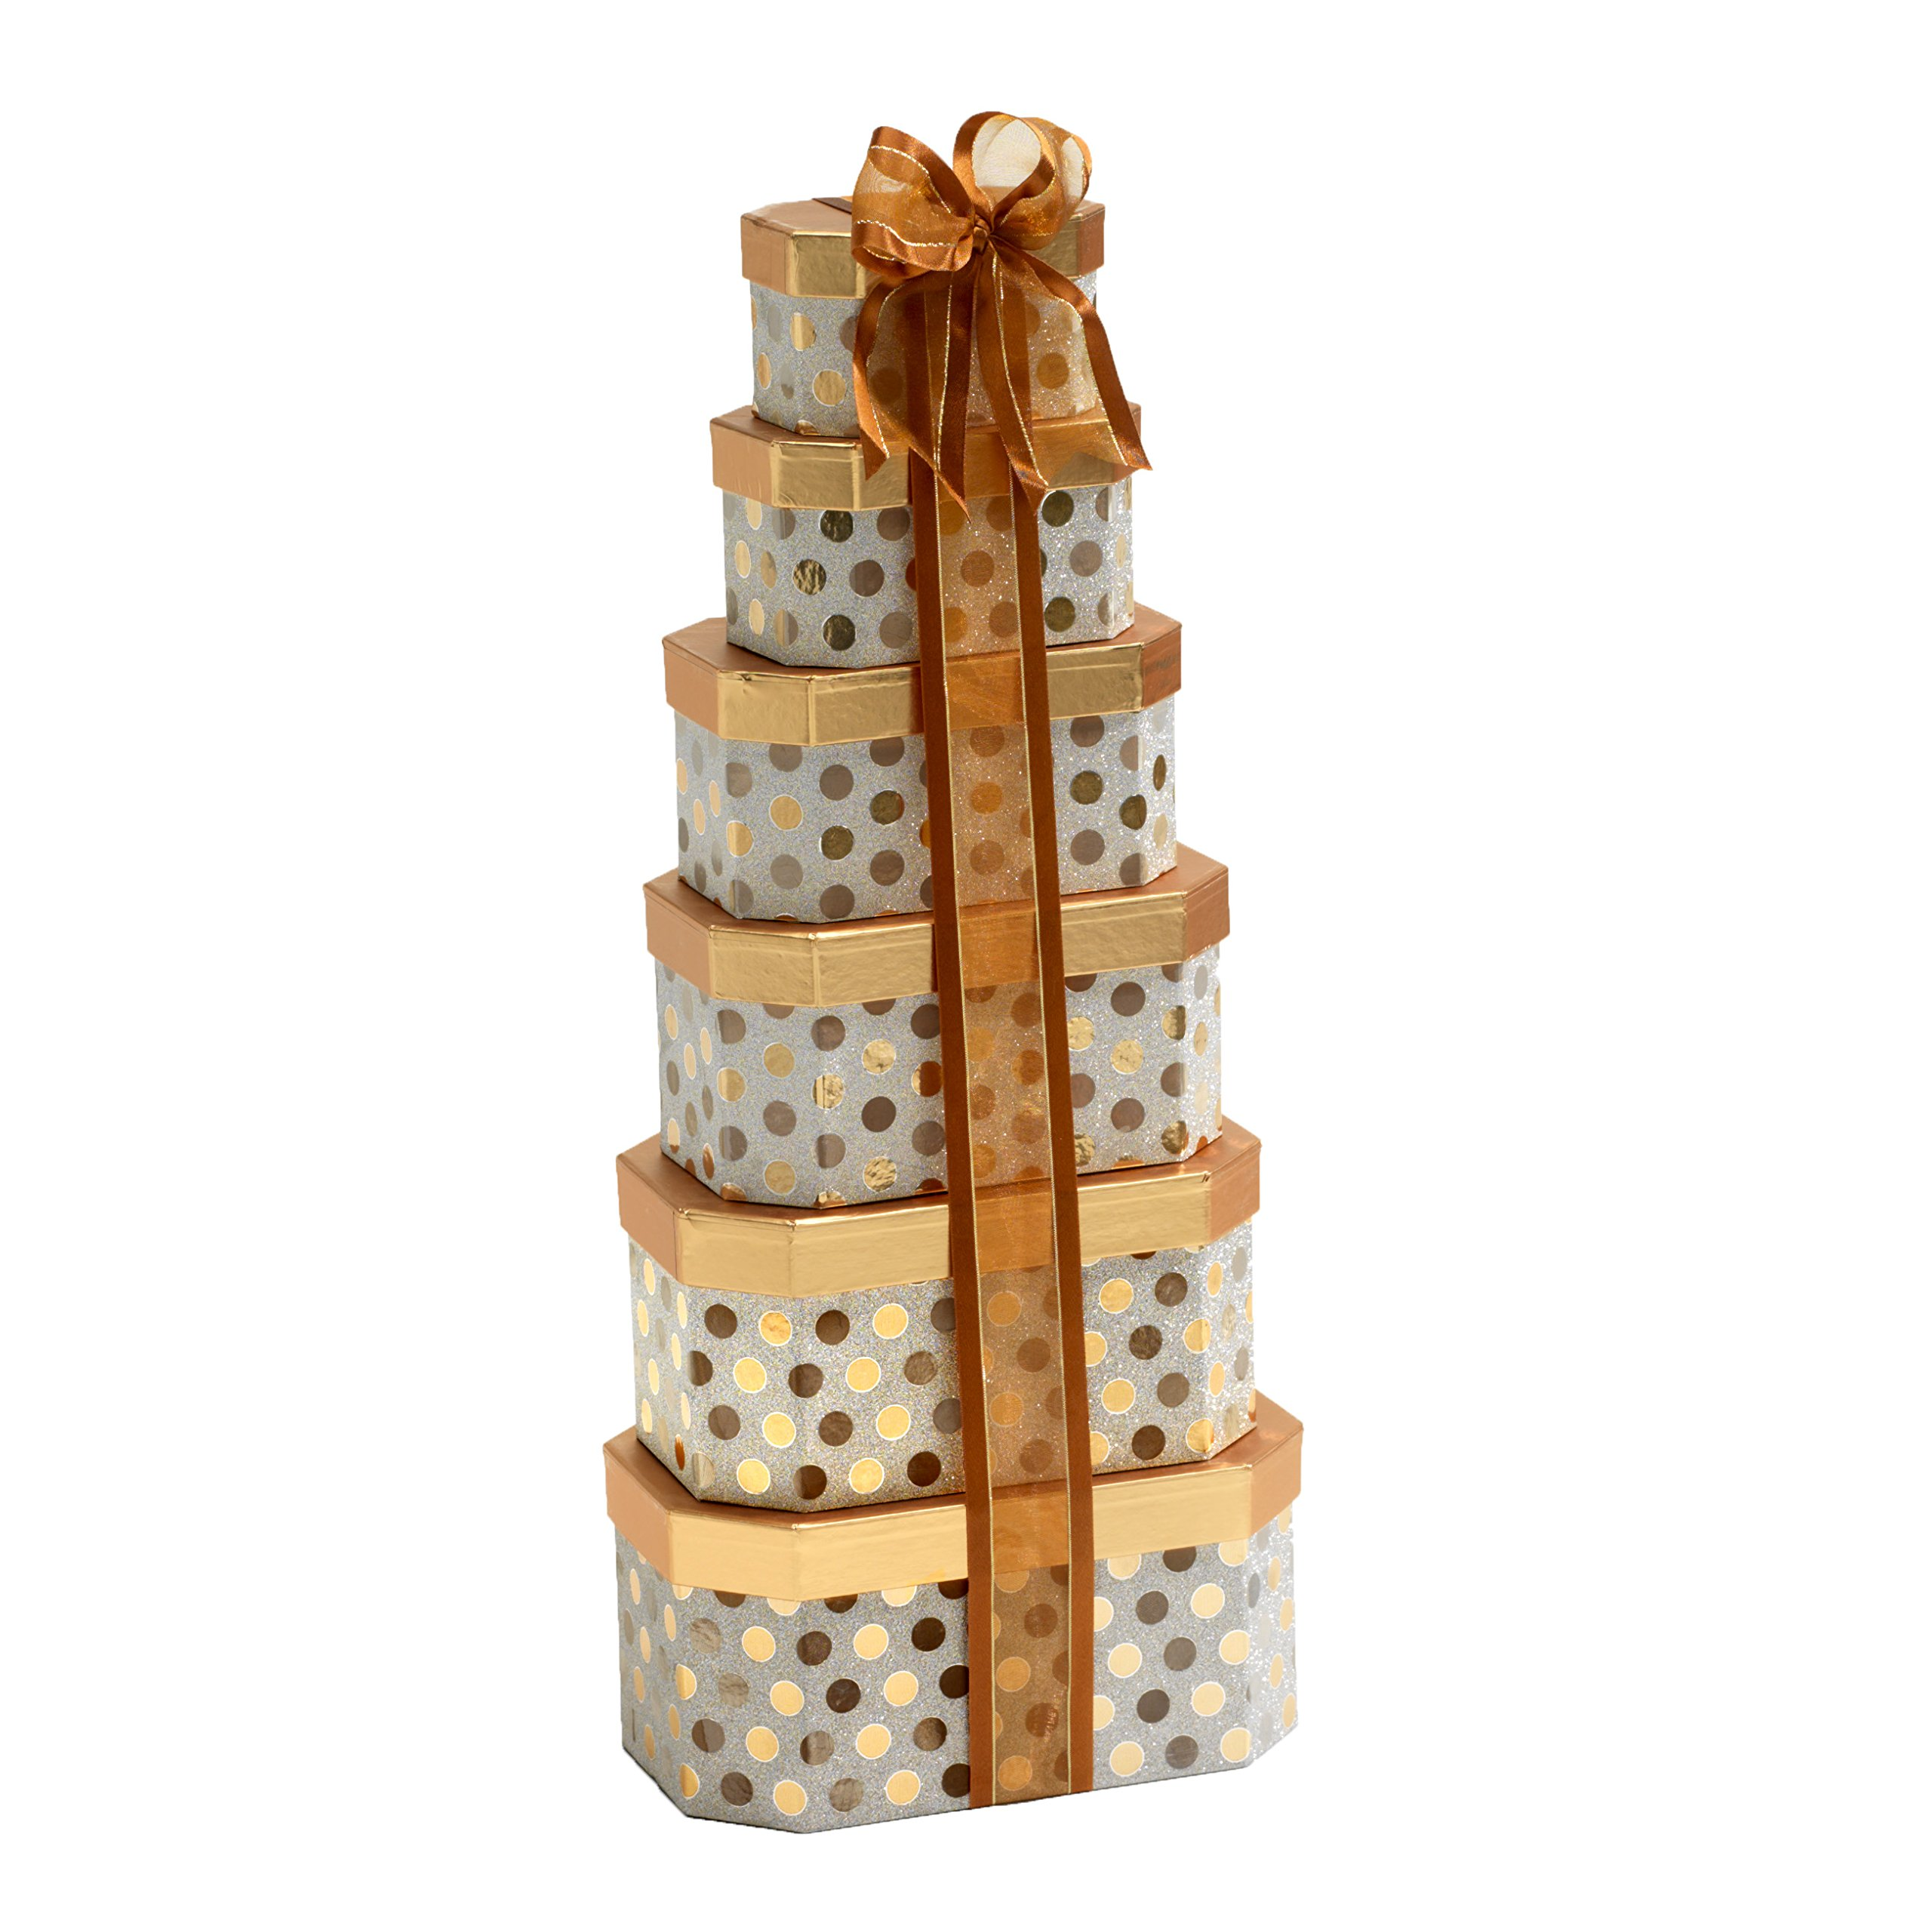 Broadway Basketeers Thinking of You Gift Tower with an Assortment of Gourmet Chocolate, Snacks, Sweets, Cookies and Nuts by Broadway Basketeers (Image #2)